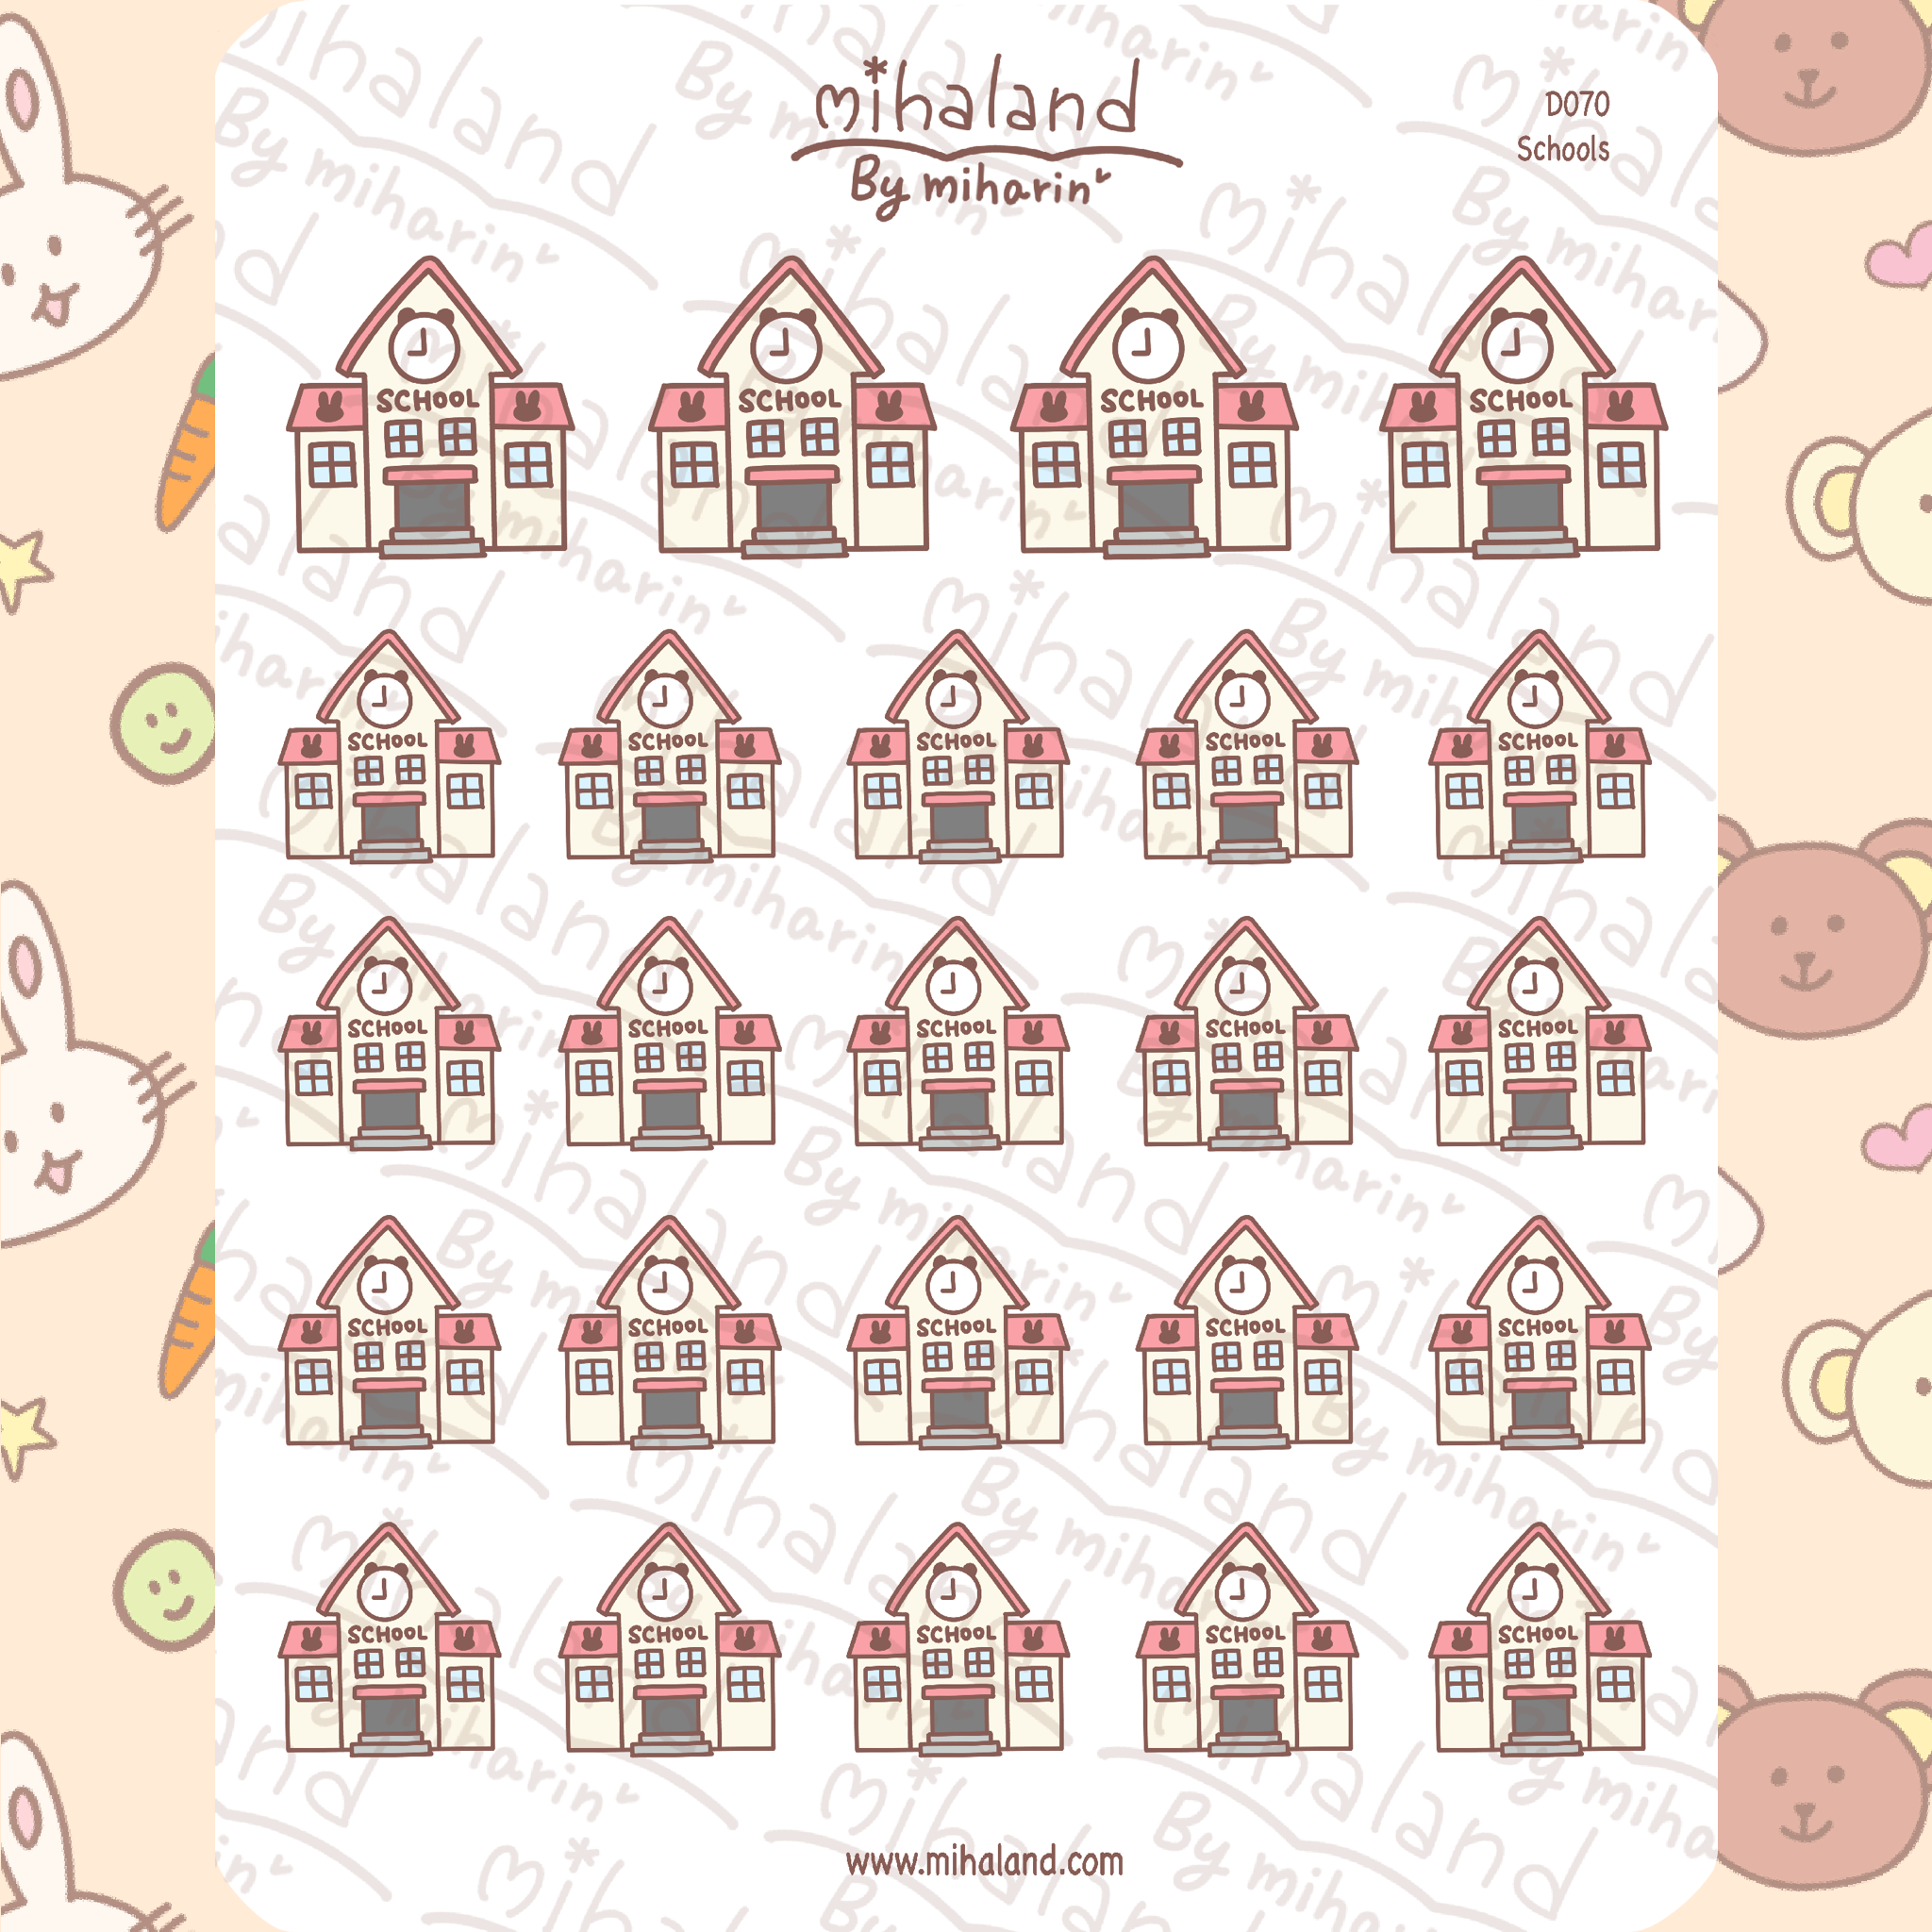 mihaland - Schools Planner Stickers (D070)